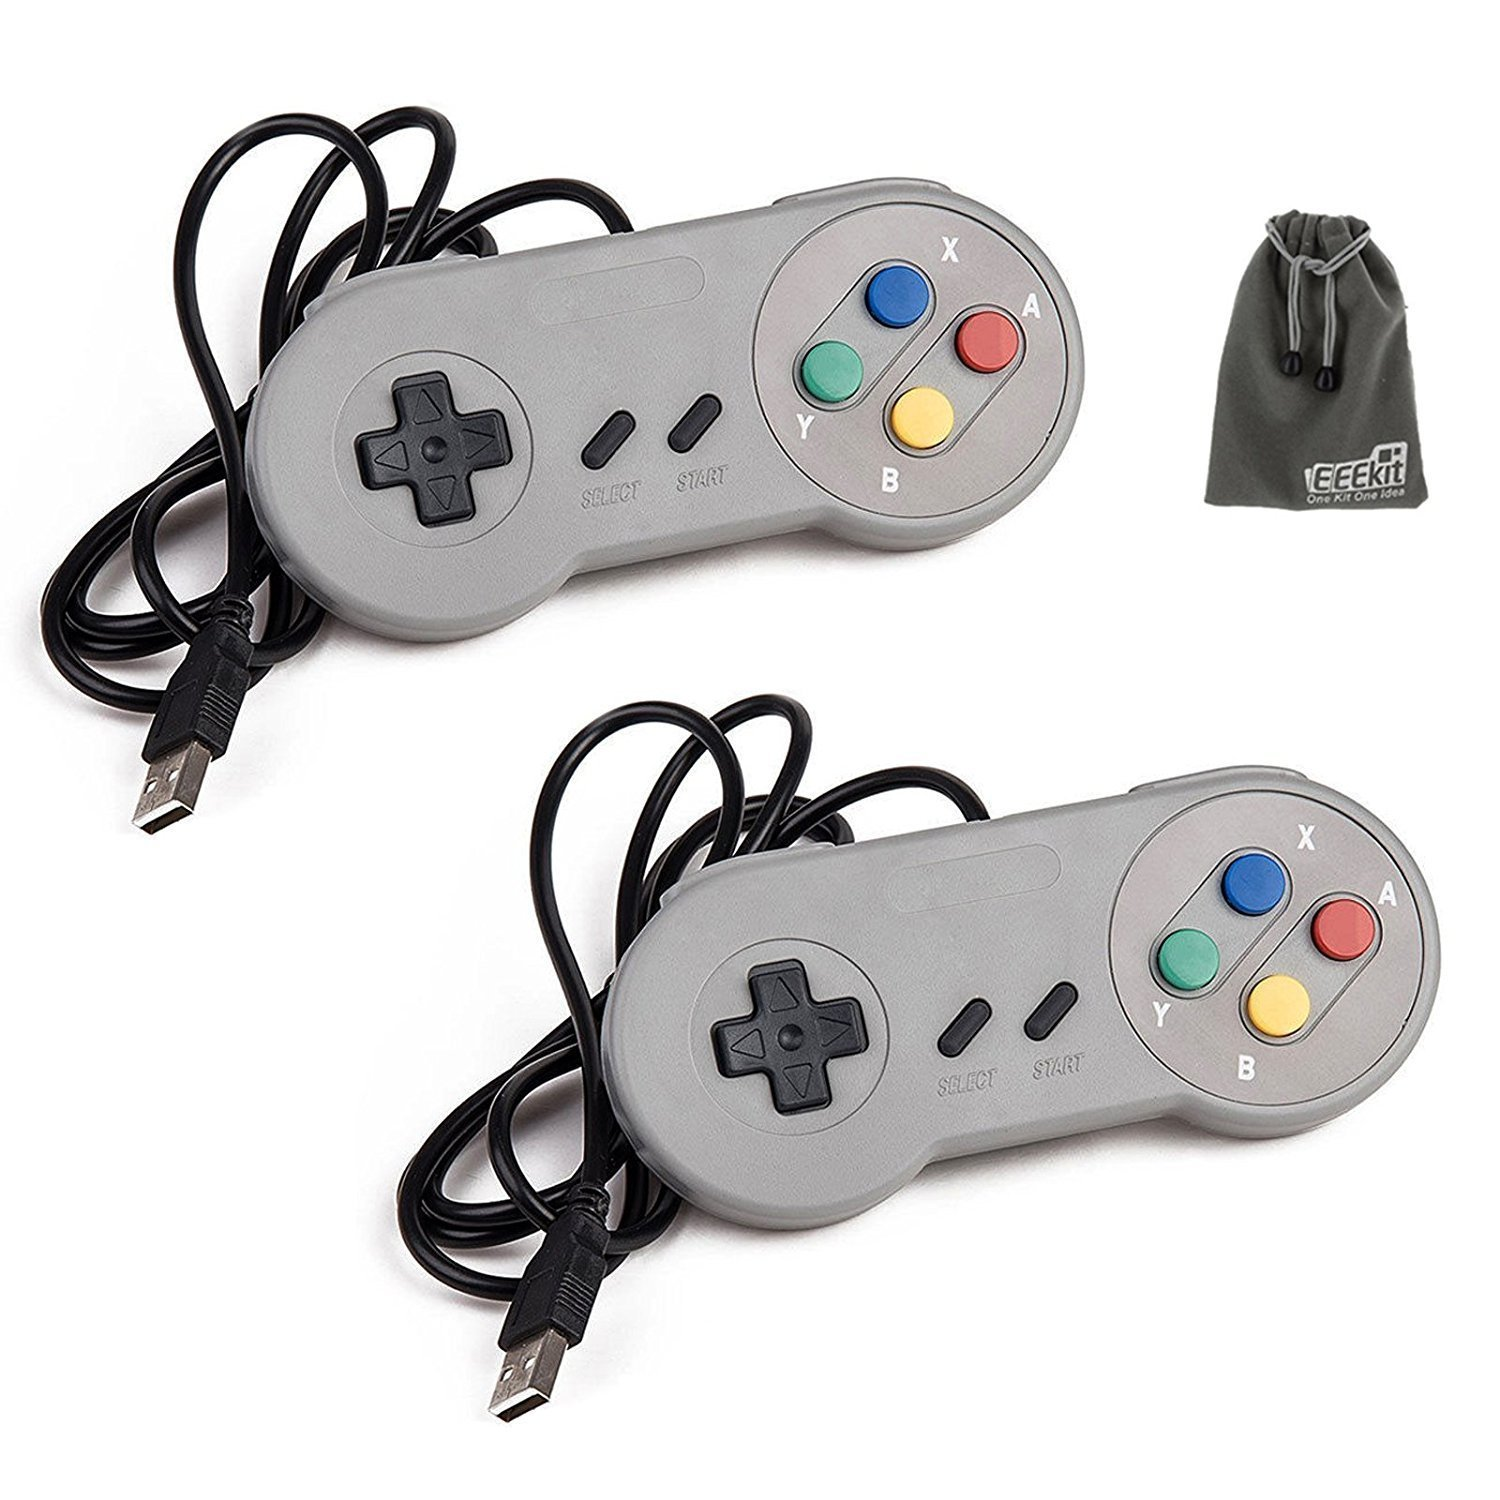 2-pack SNES Retro Classic USB Super Nintendo Games Controller for PC Windows SFC